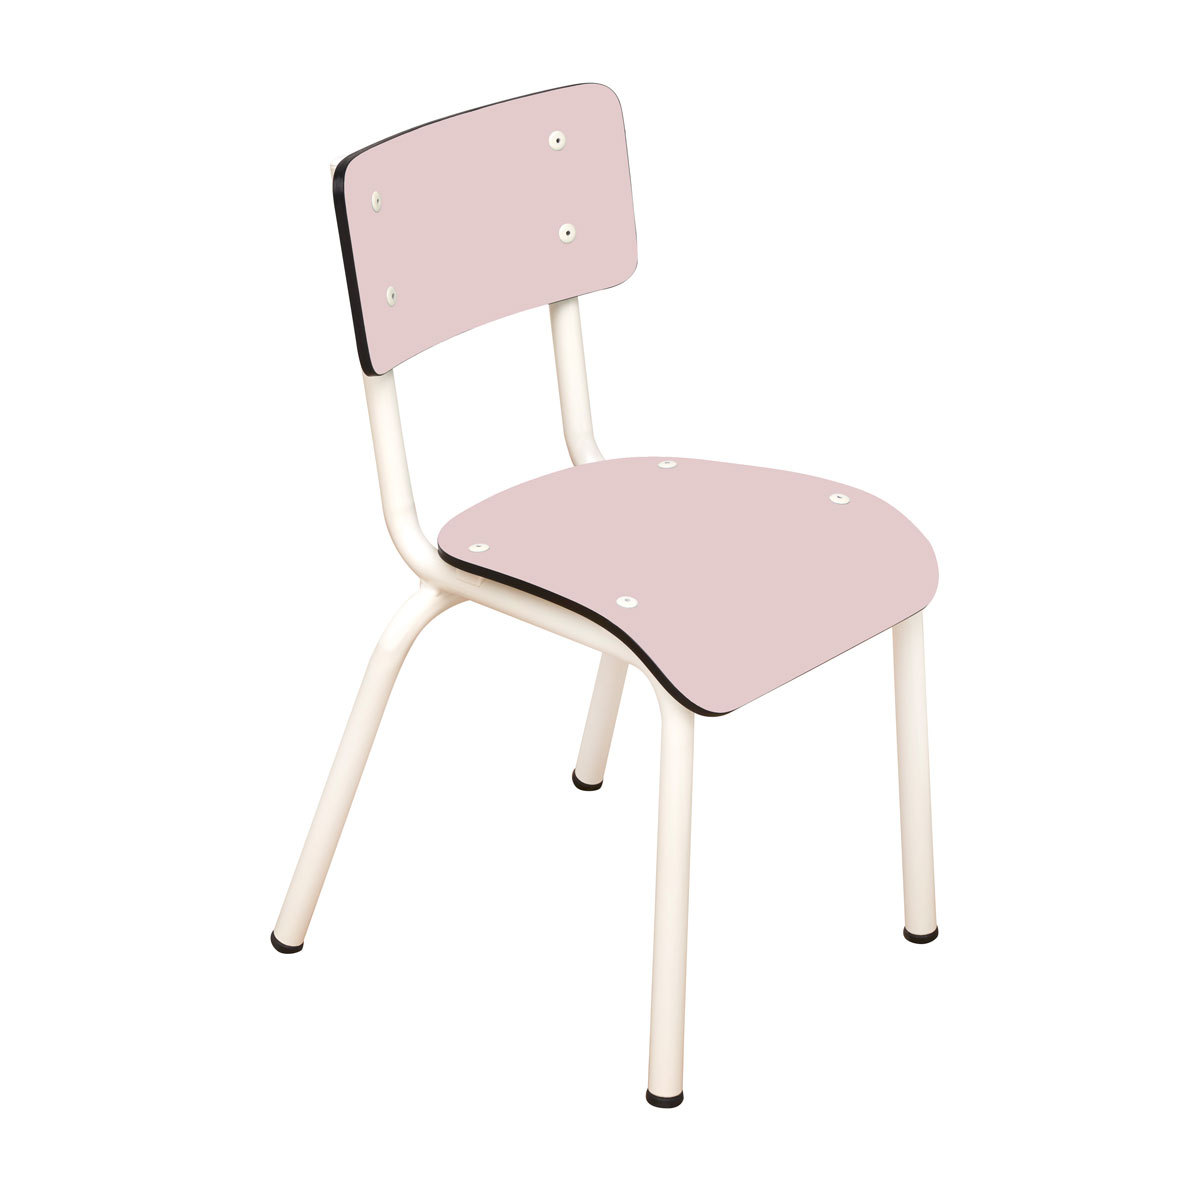 Les Gambettes Chaise Little Suzie Rose Poudré Table Chaise Les